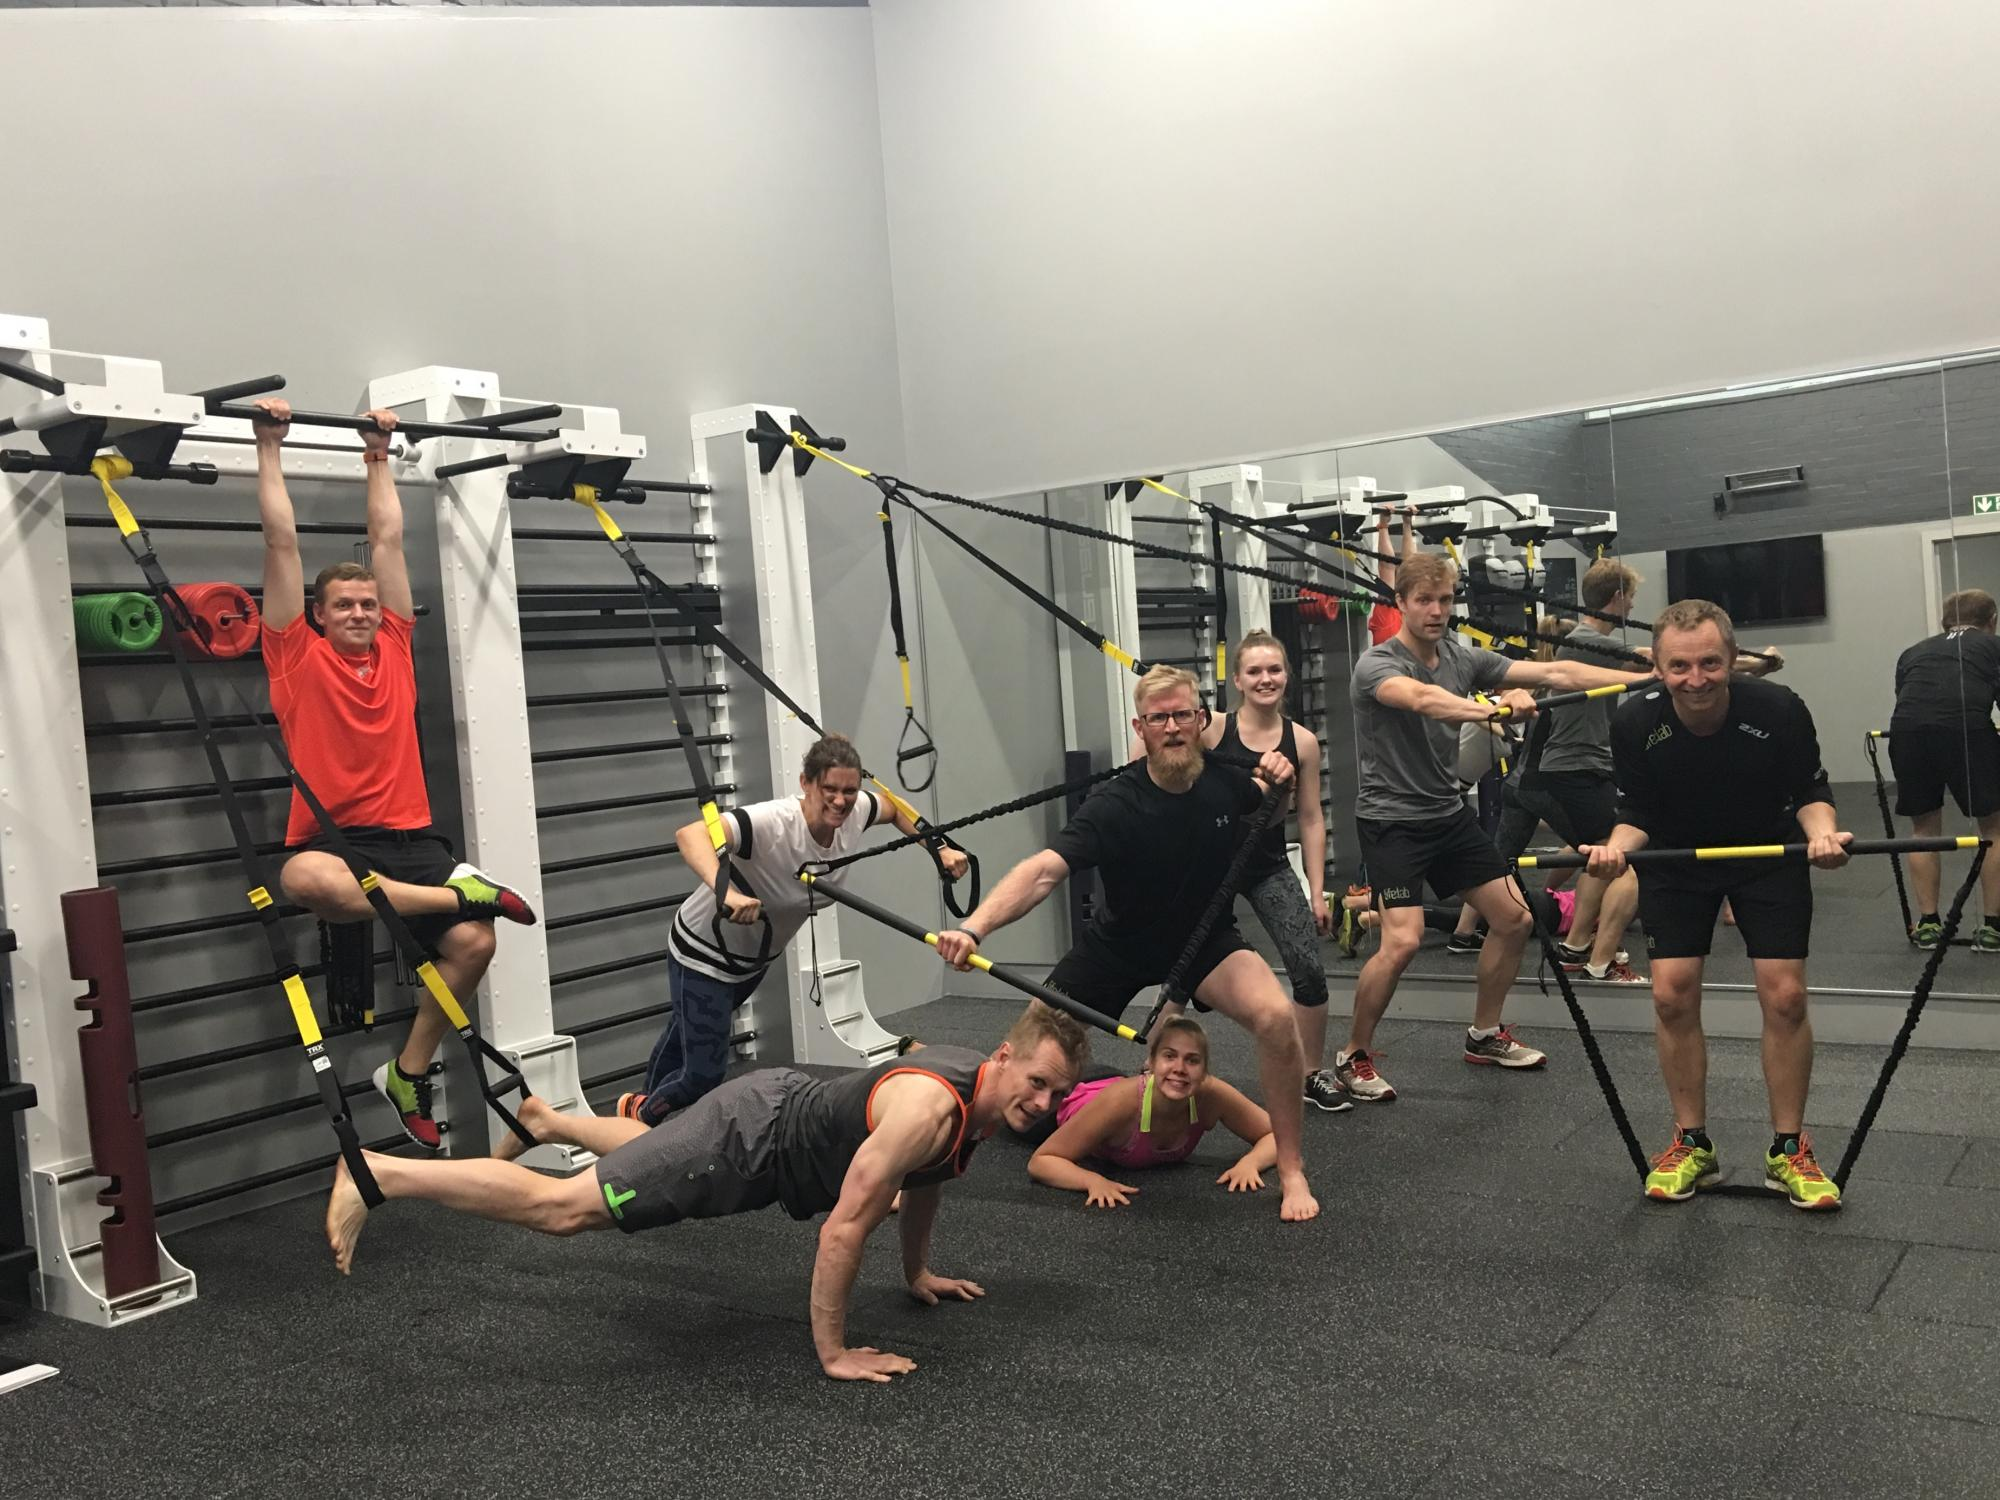 Functional Training Solutions Precor Fitness On Pinterest Workout Circuit Workouts And Strength Of Clubs Installing Queenax As Members Are Looking To Attend Group Exercise Classes With High Quality Instructors